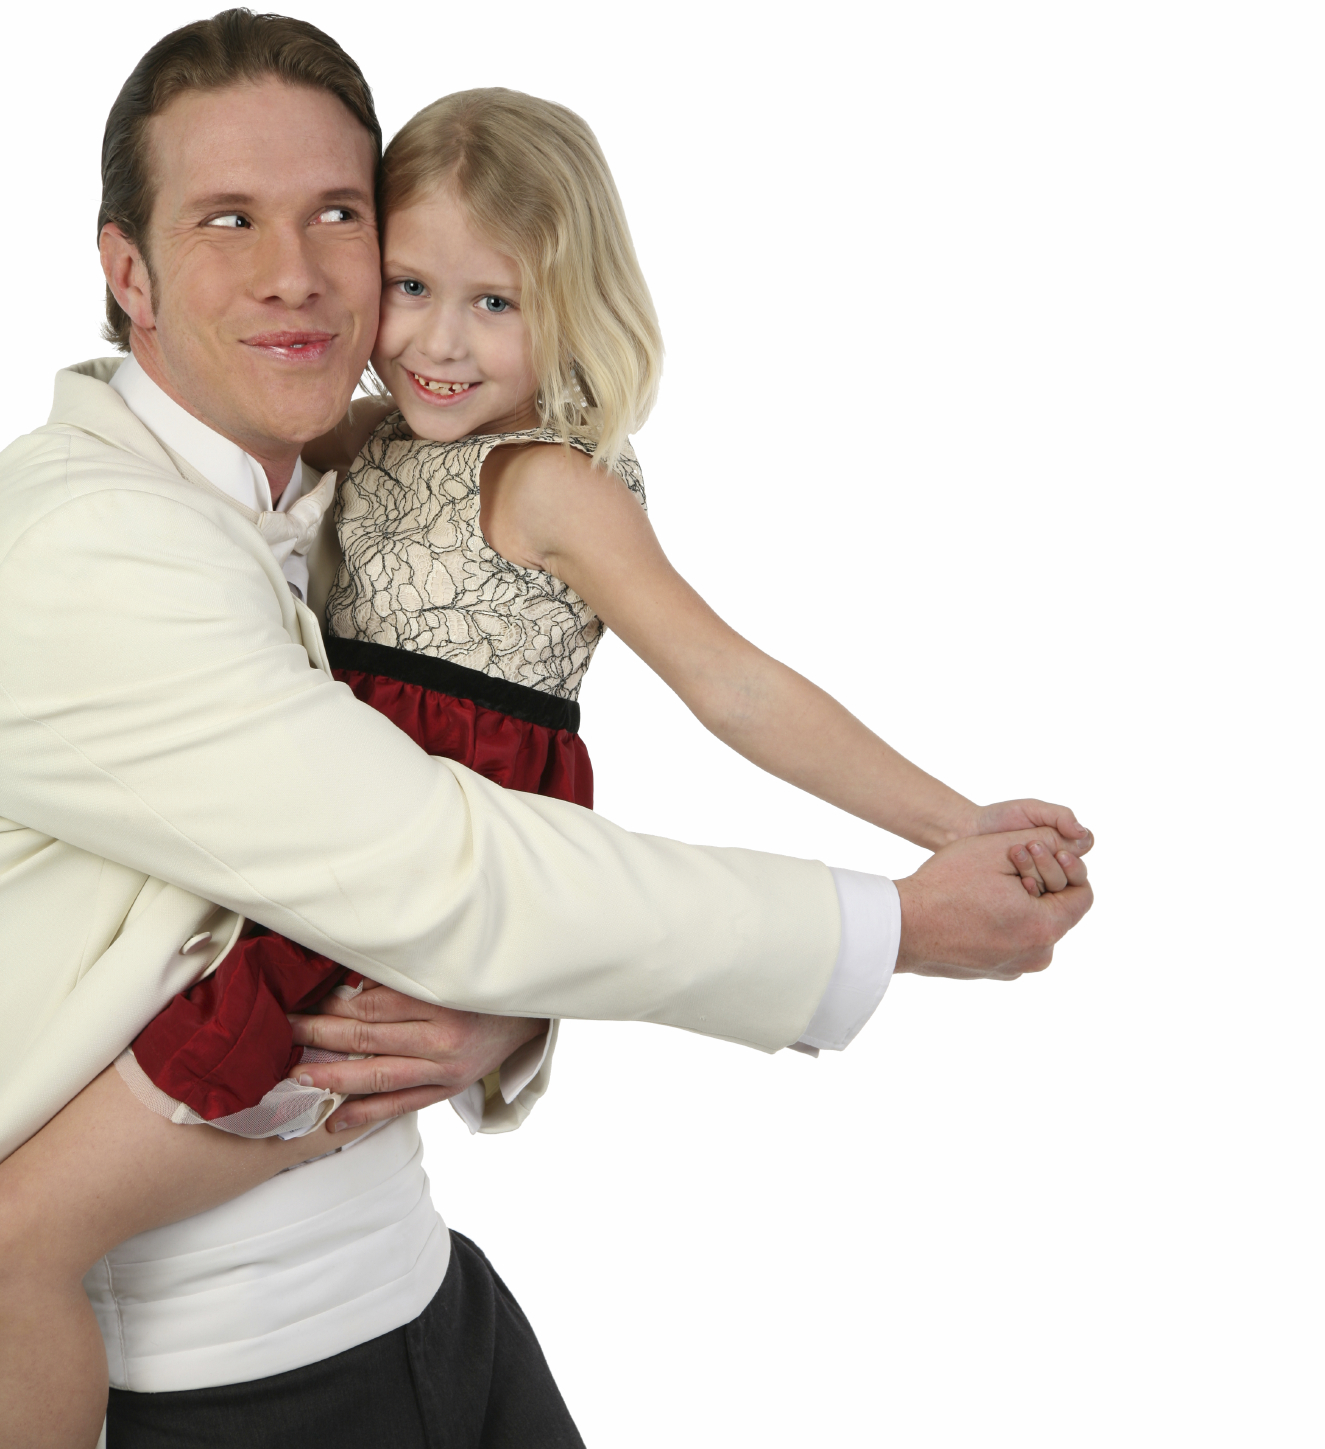 Father and daughter dancing in formals being silly